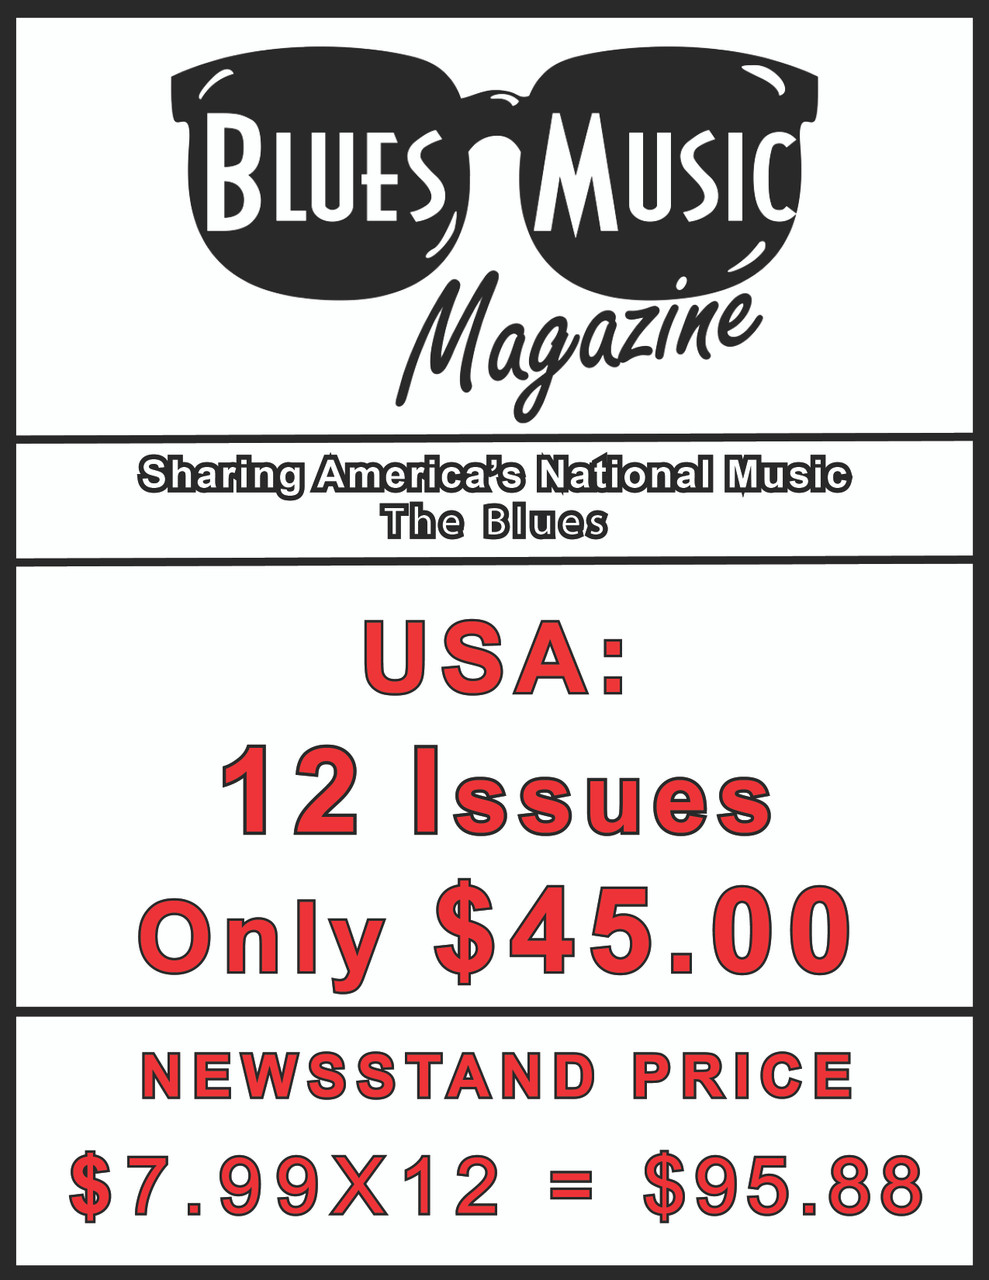 USA SUBSCRIBE OR RENEW FOR 12 ISSUES = 3 YEARS